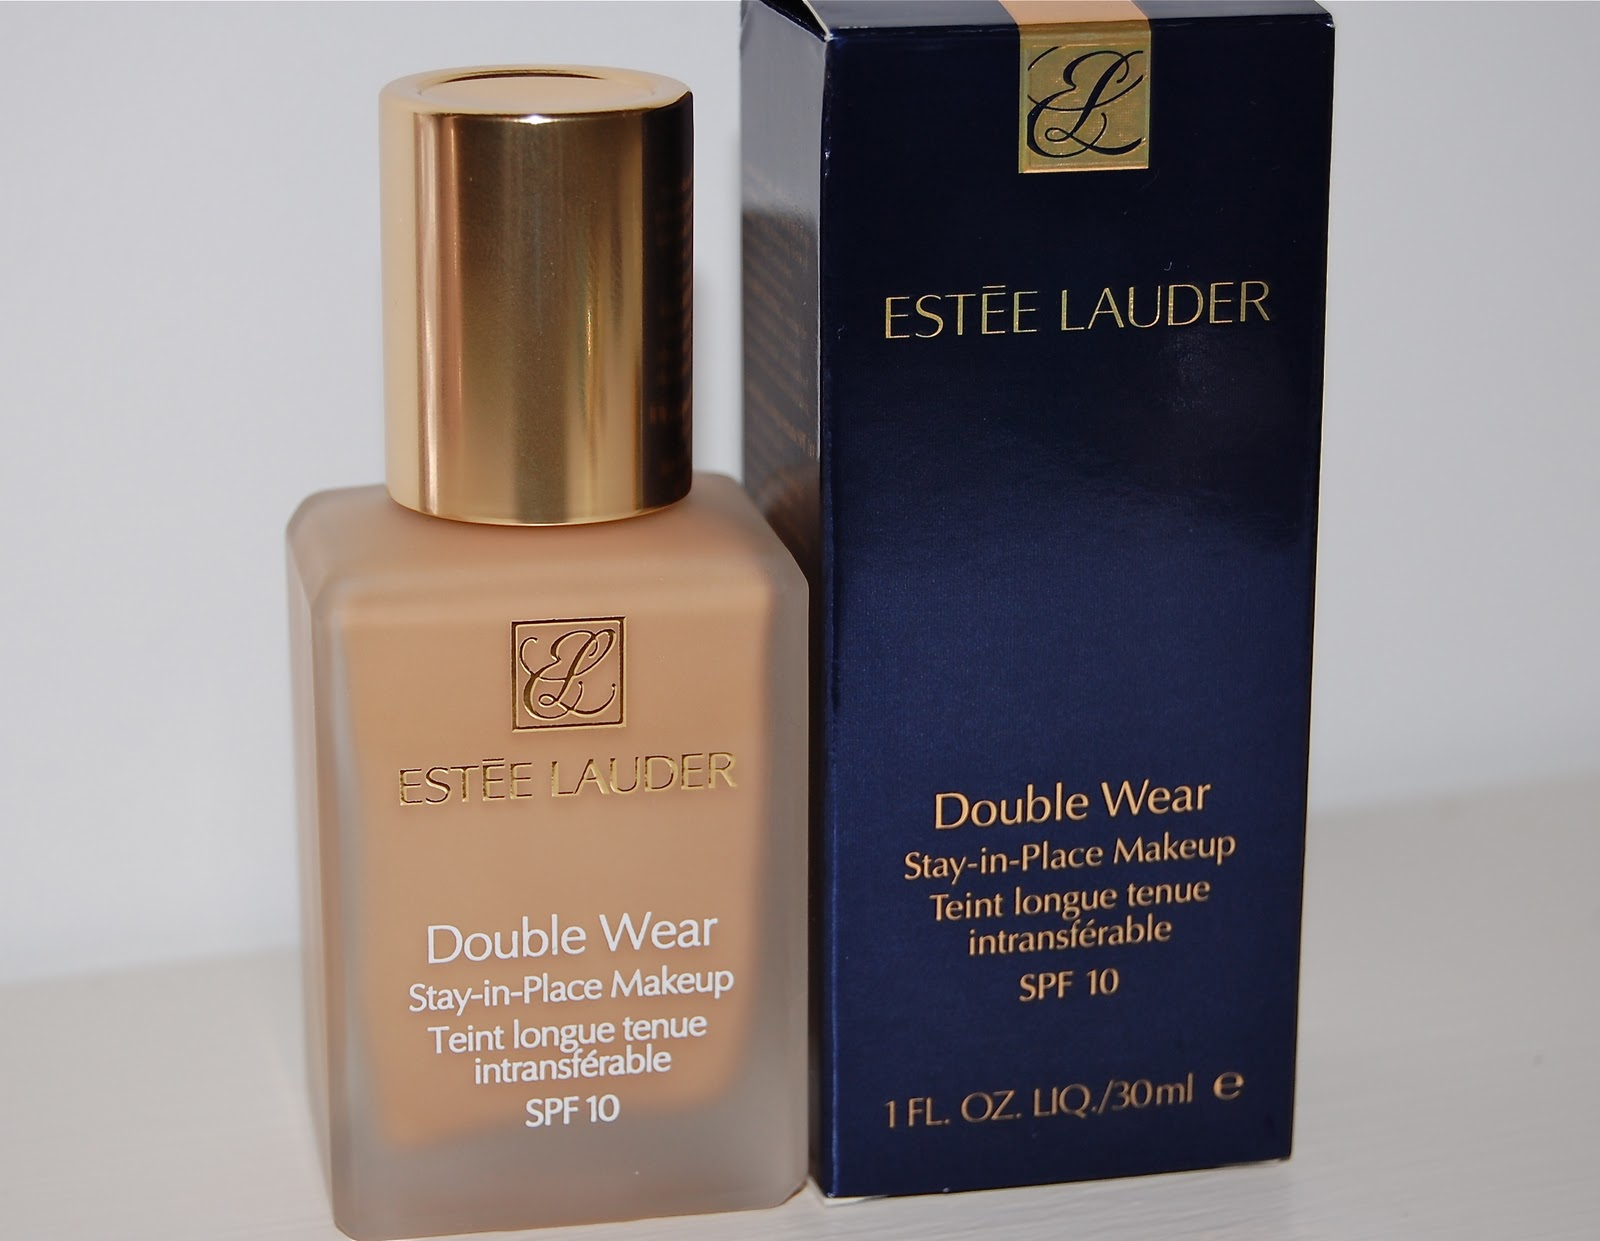 Estee Lauder double wear foundation Review: